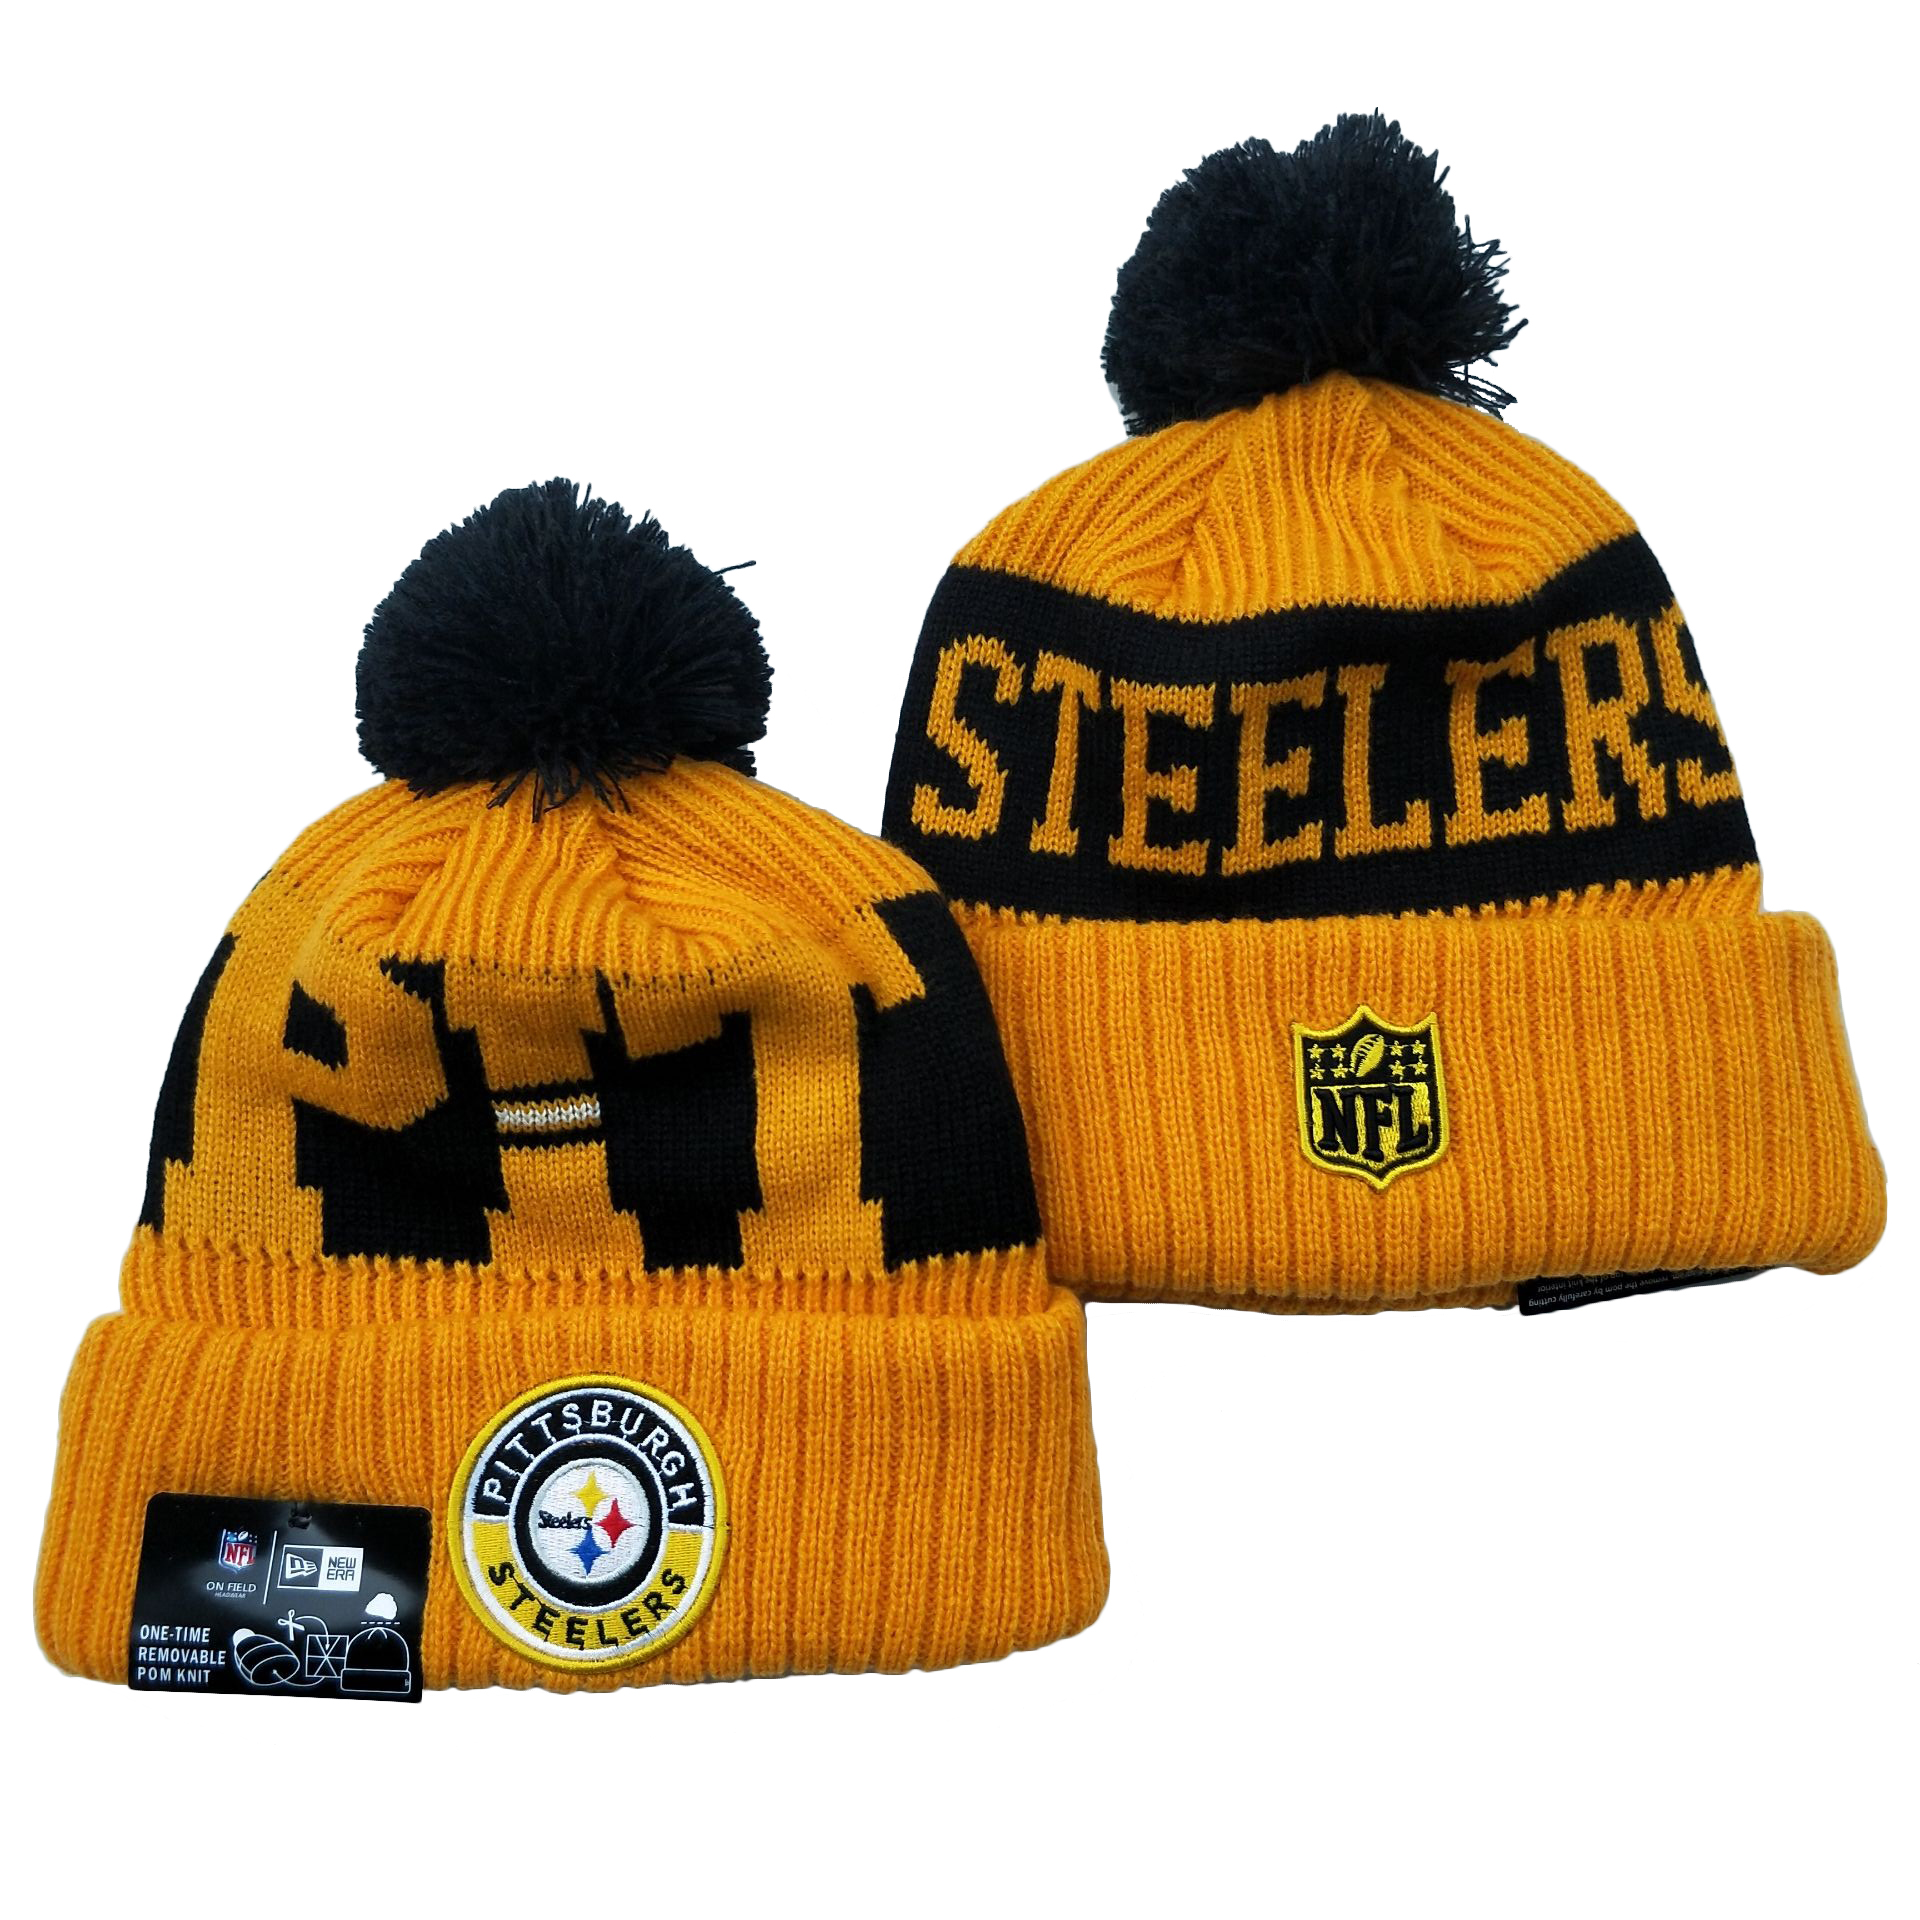 Steelers Team Logo Yellow 2020 NFL Sideline Pom Cuffed Knit Hat YD